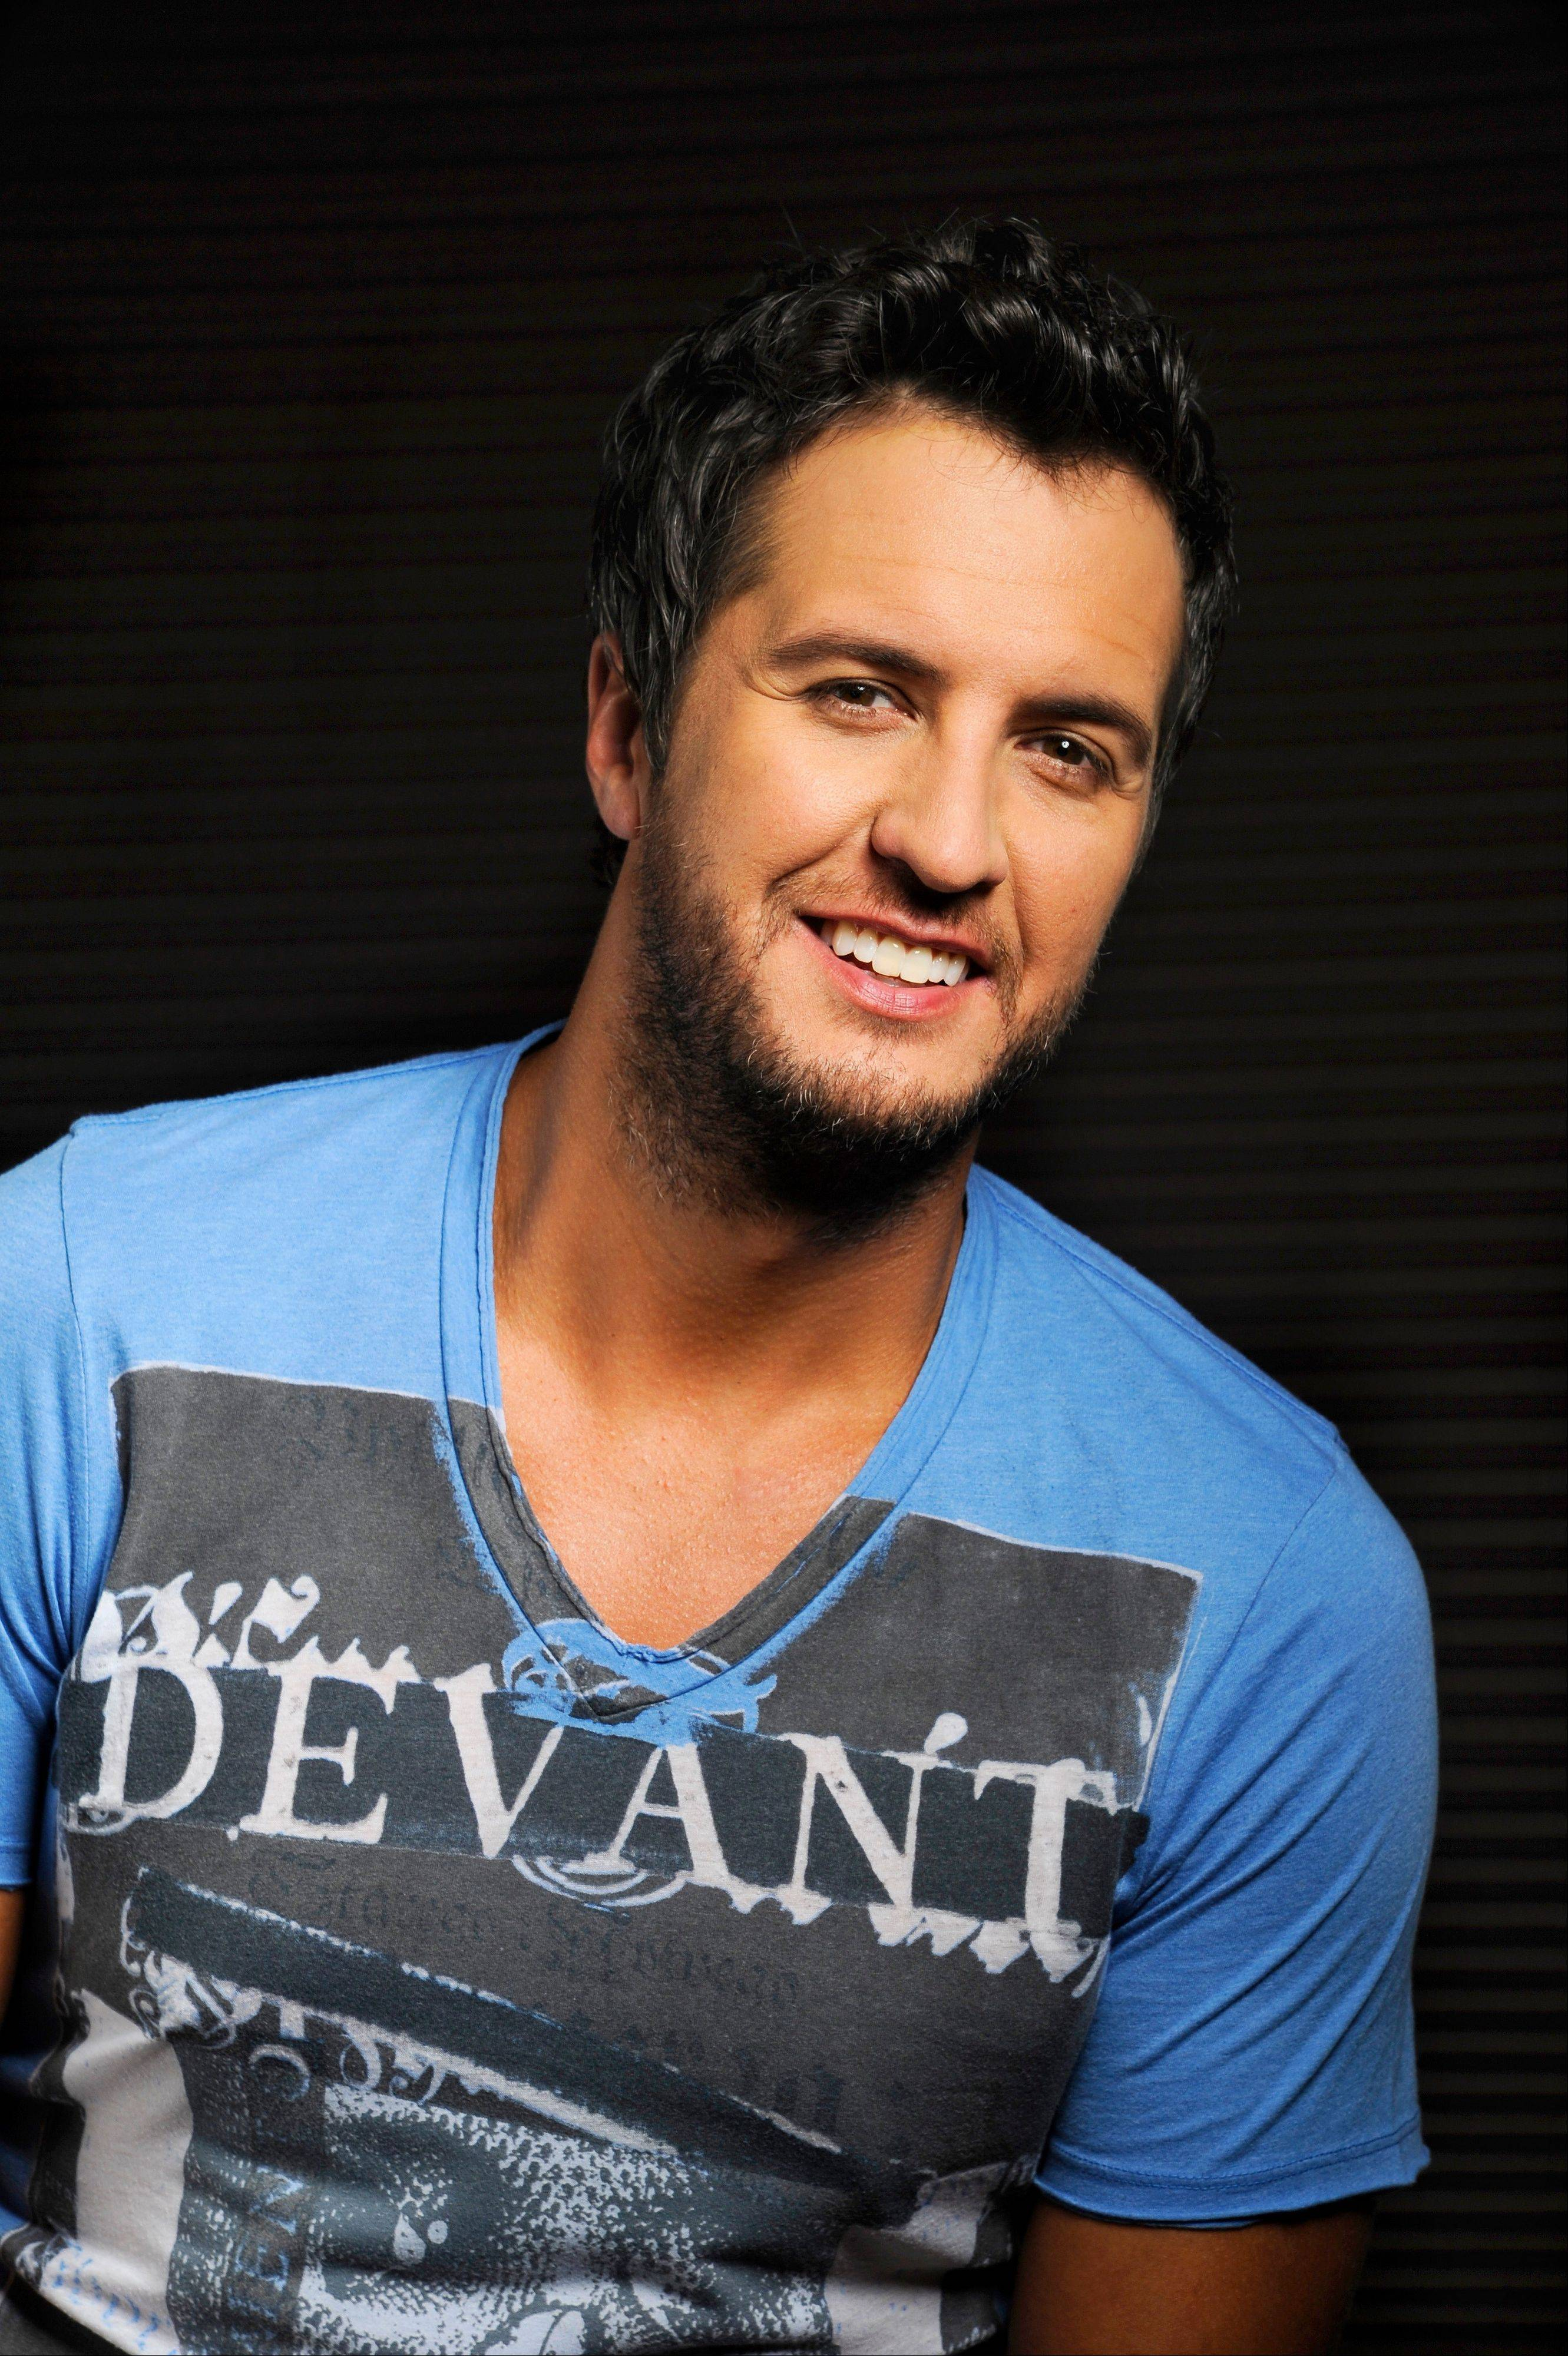 Luke Bryan has taken an unusual approach to the business side of his career since winning the Academy of Country Music�s entertainer of the year in April: He�s turning down almost everything.